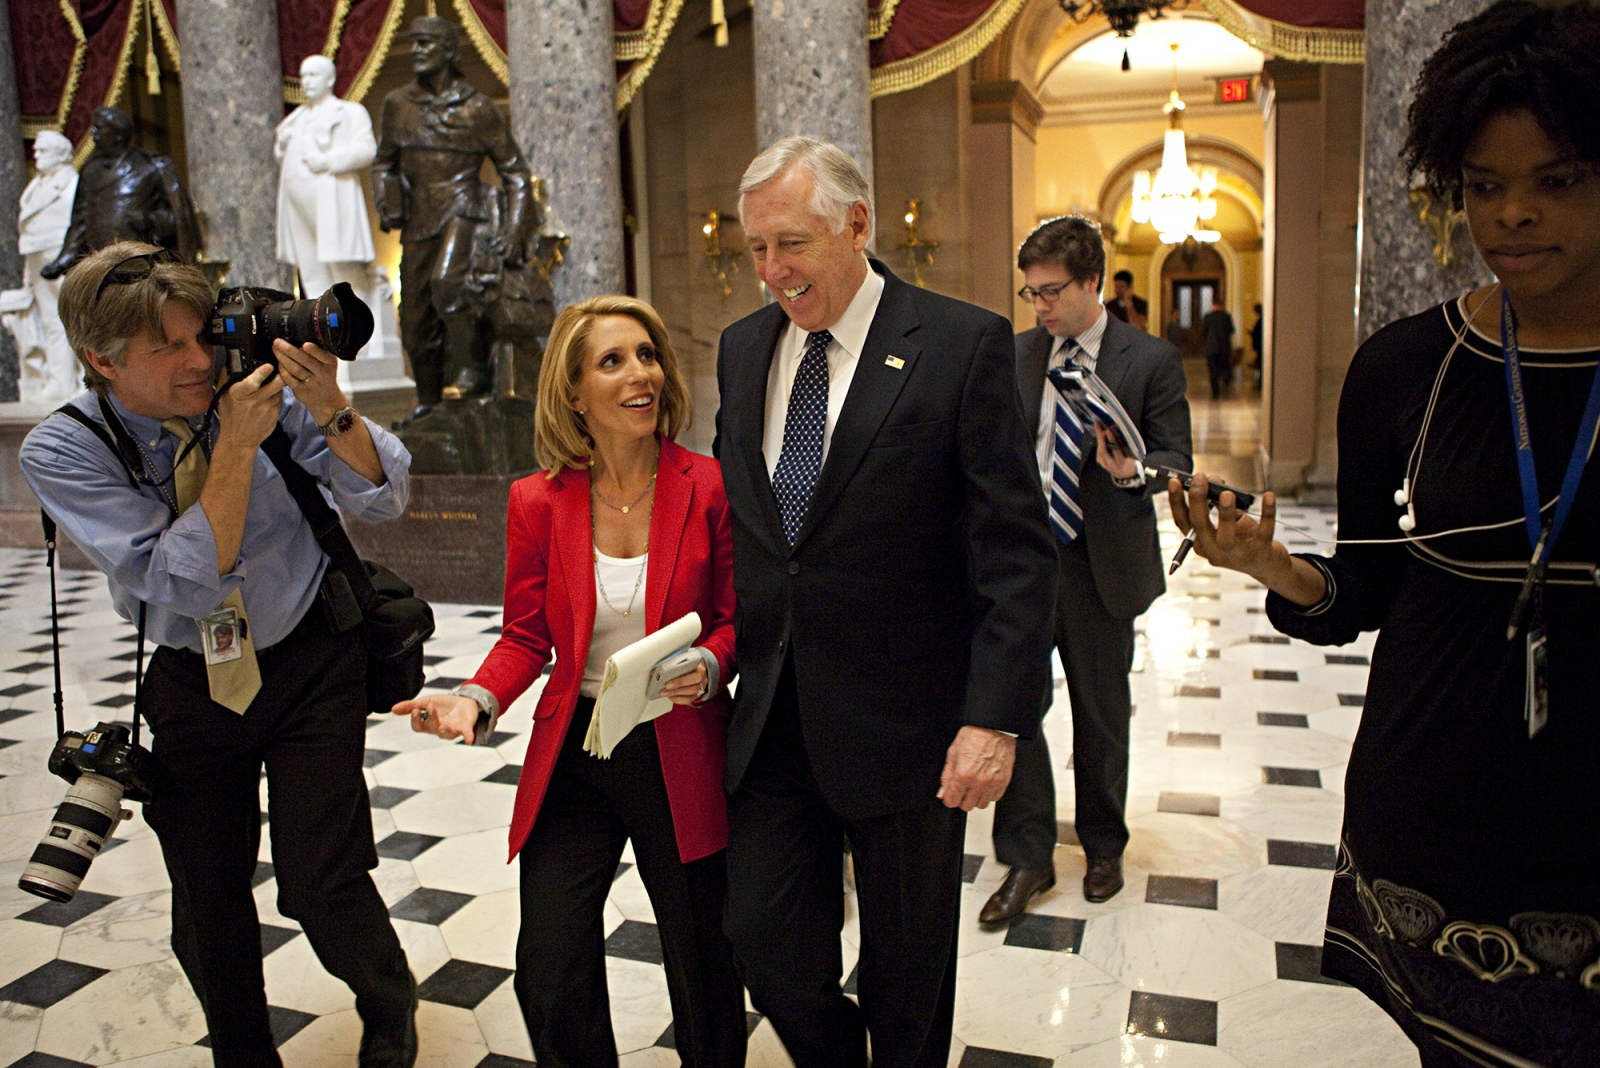 RepresentativeSteny Hoyer takes questions from Dana Bash in the Hall of Statues.